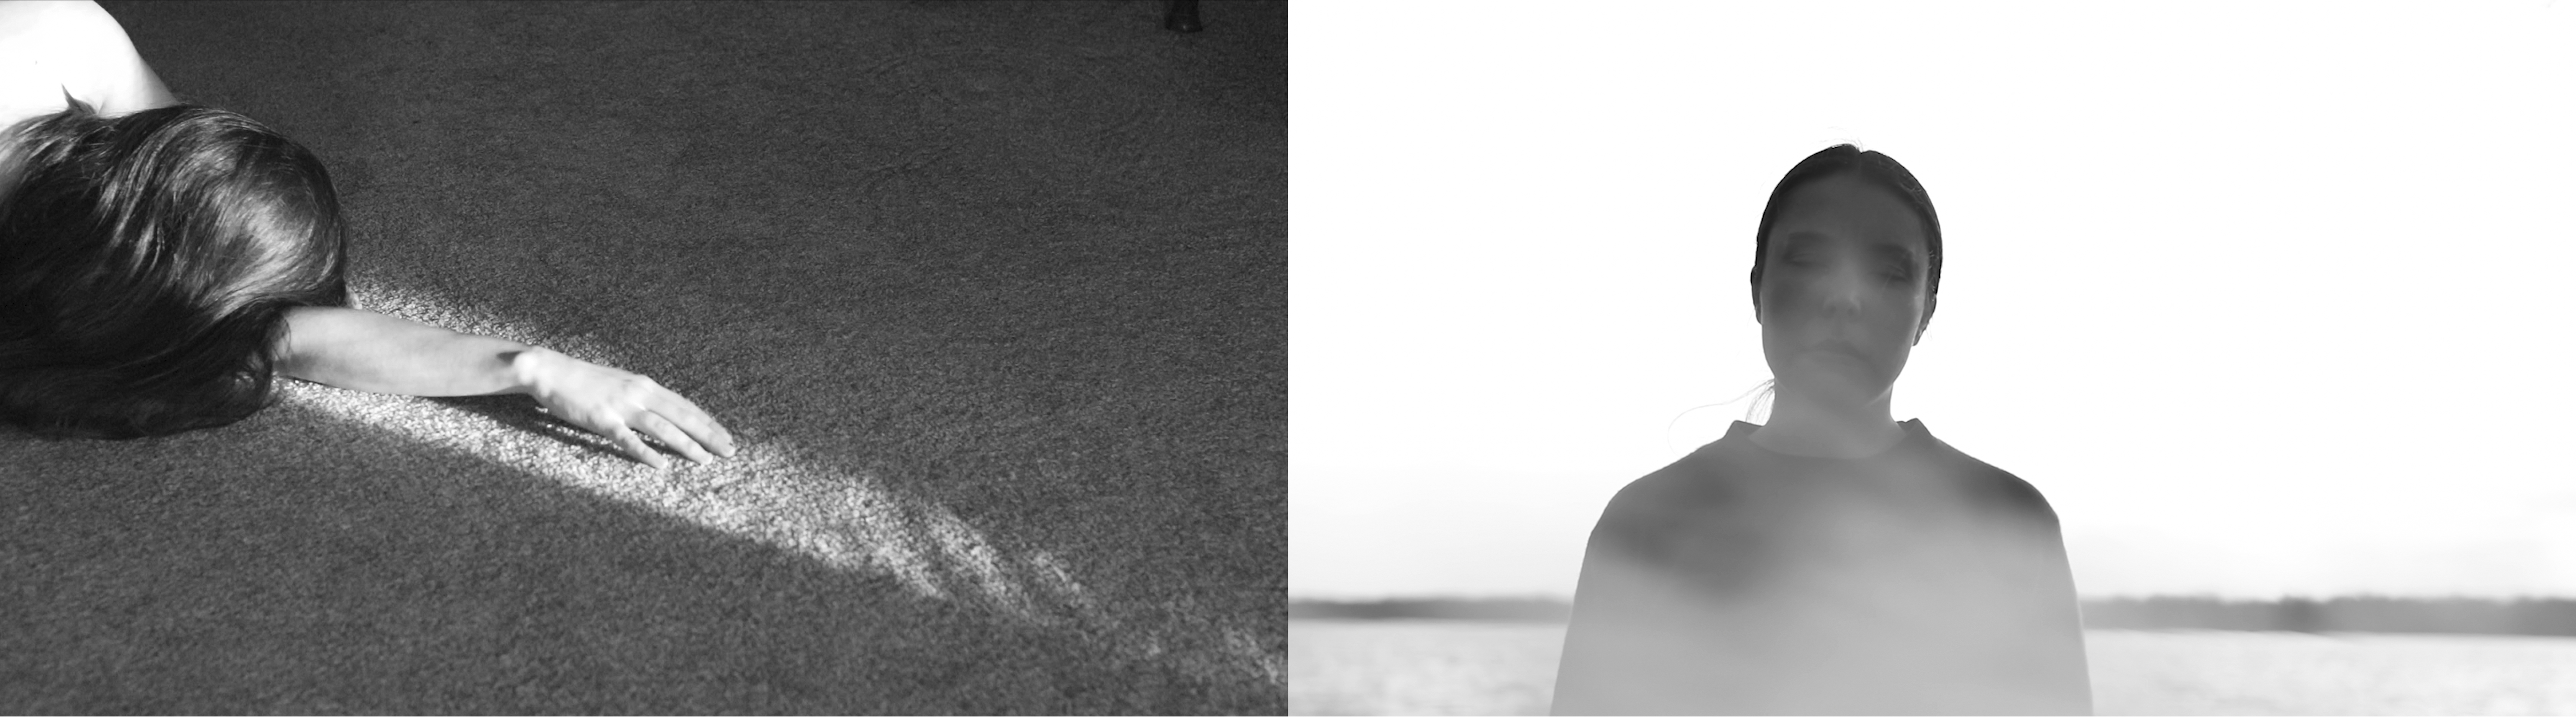 Two black and white photos side by side by MFA student Amrita Stützle.